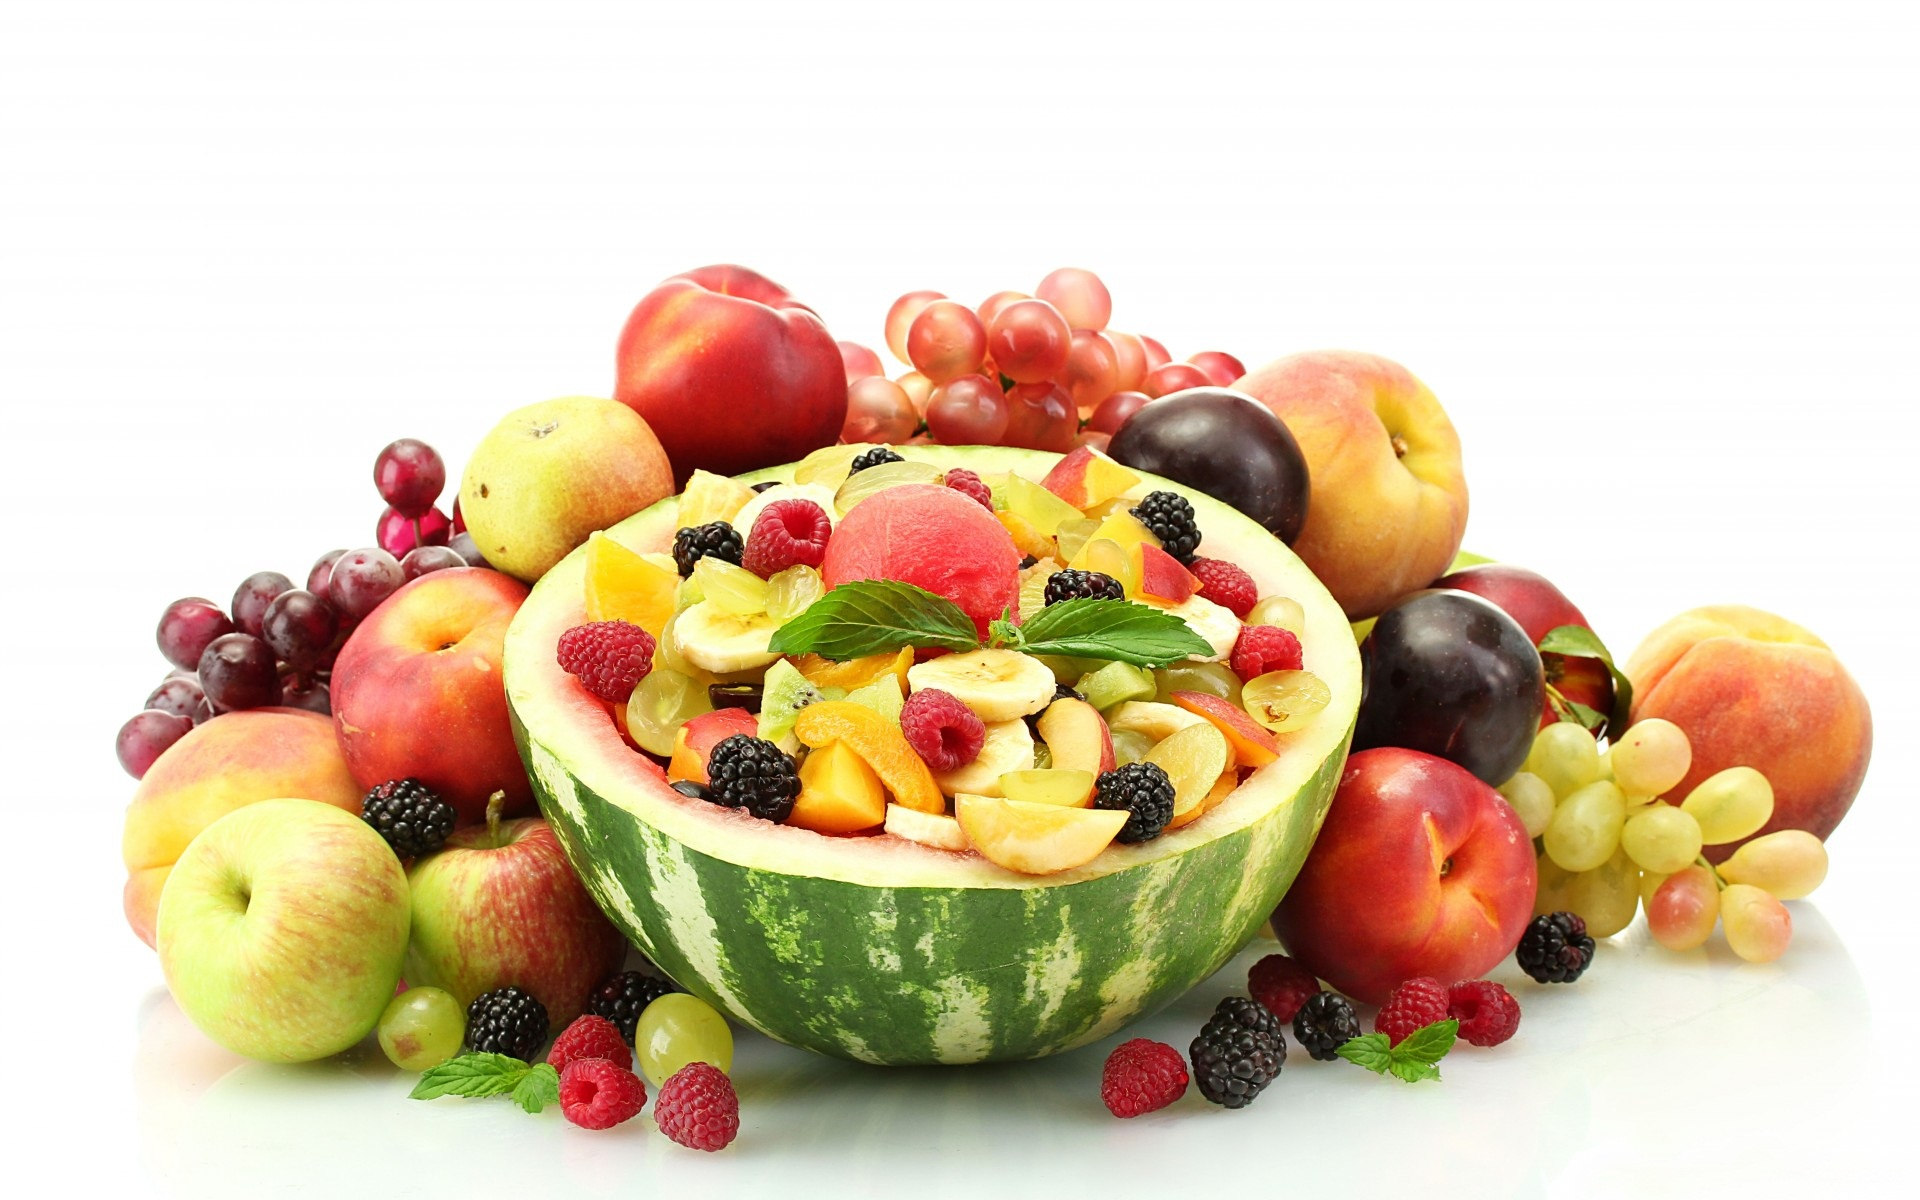 Fruit Salad Wallpaper